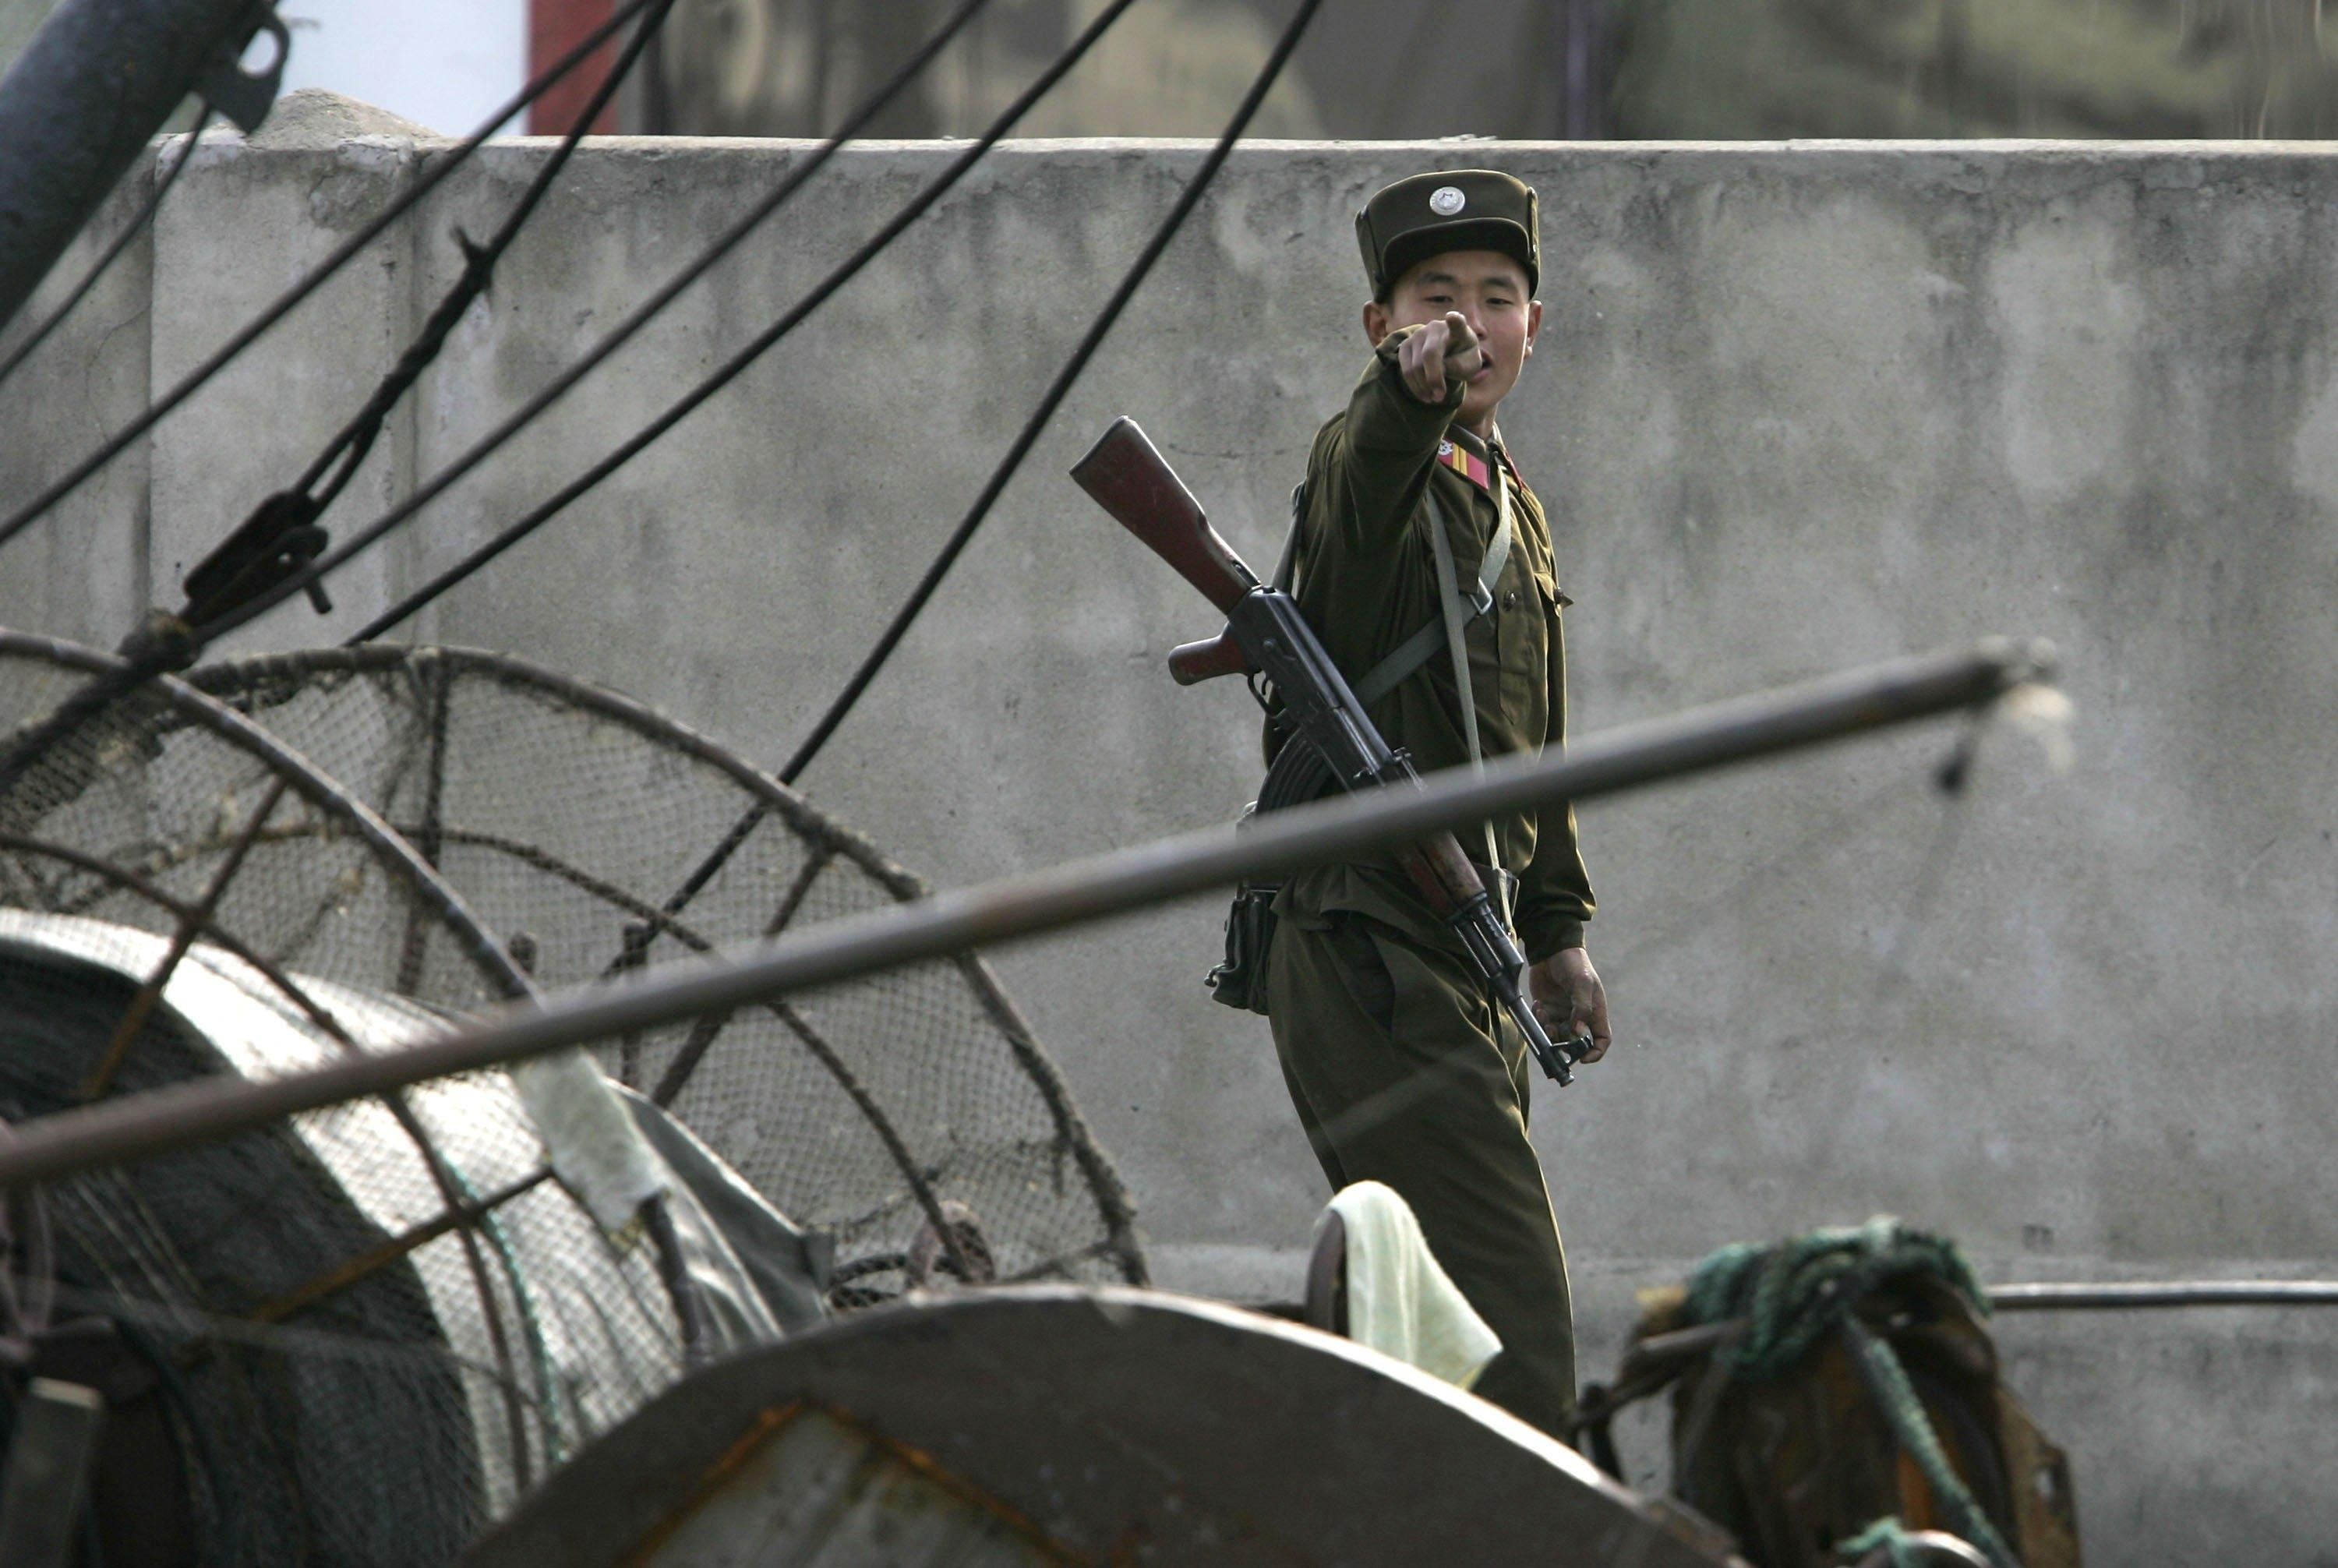 North Korea Has At Least 300 Mass Execution Sites And 47